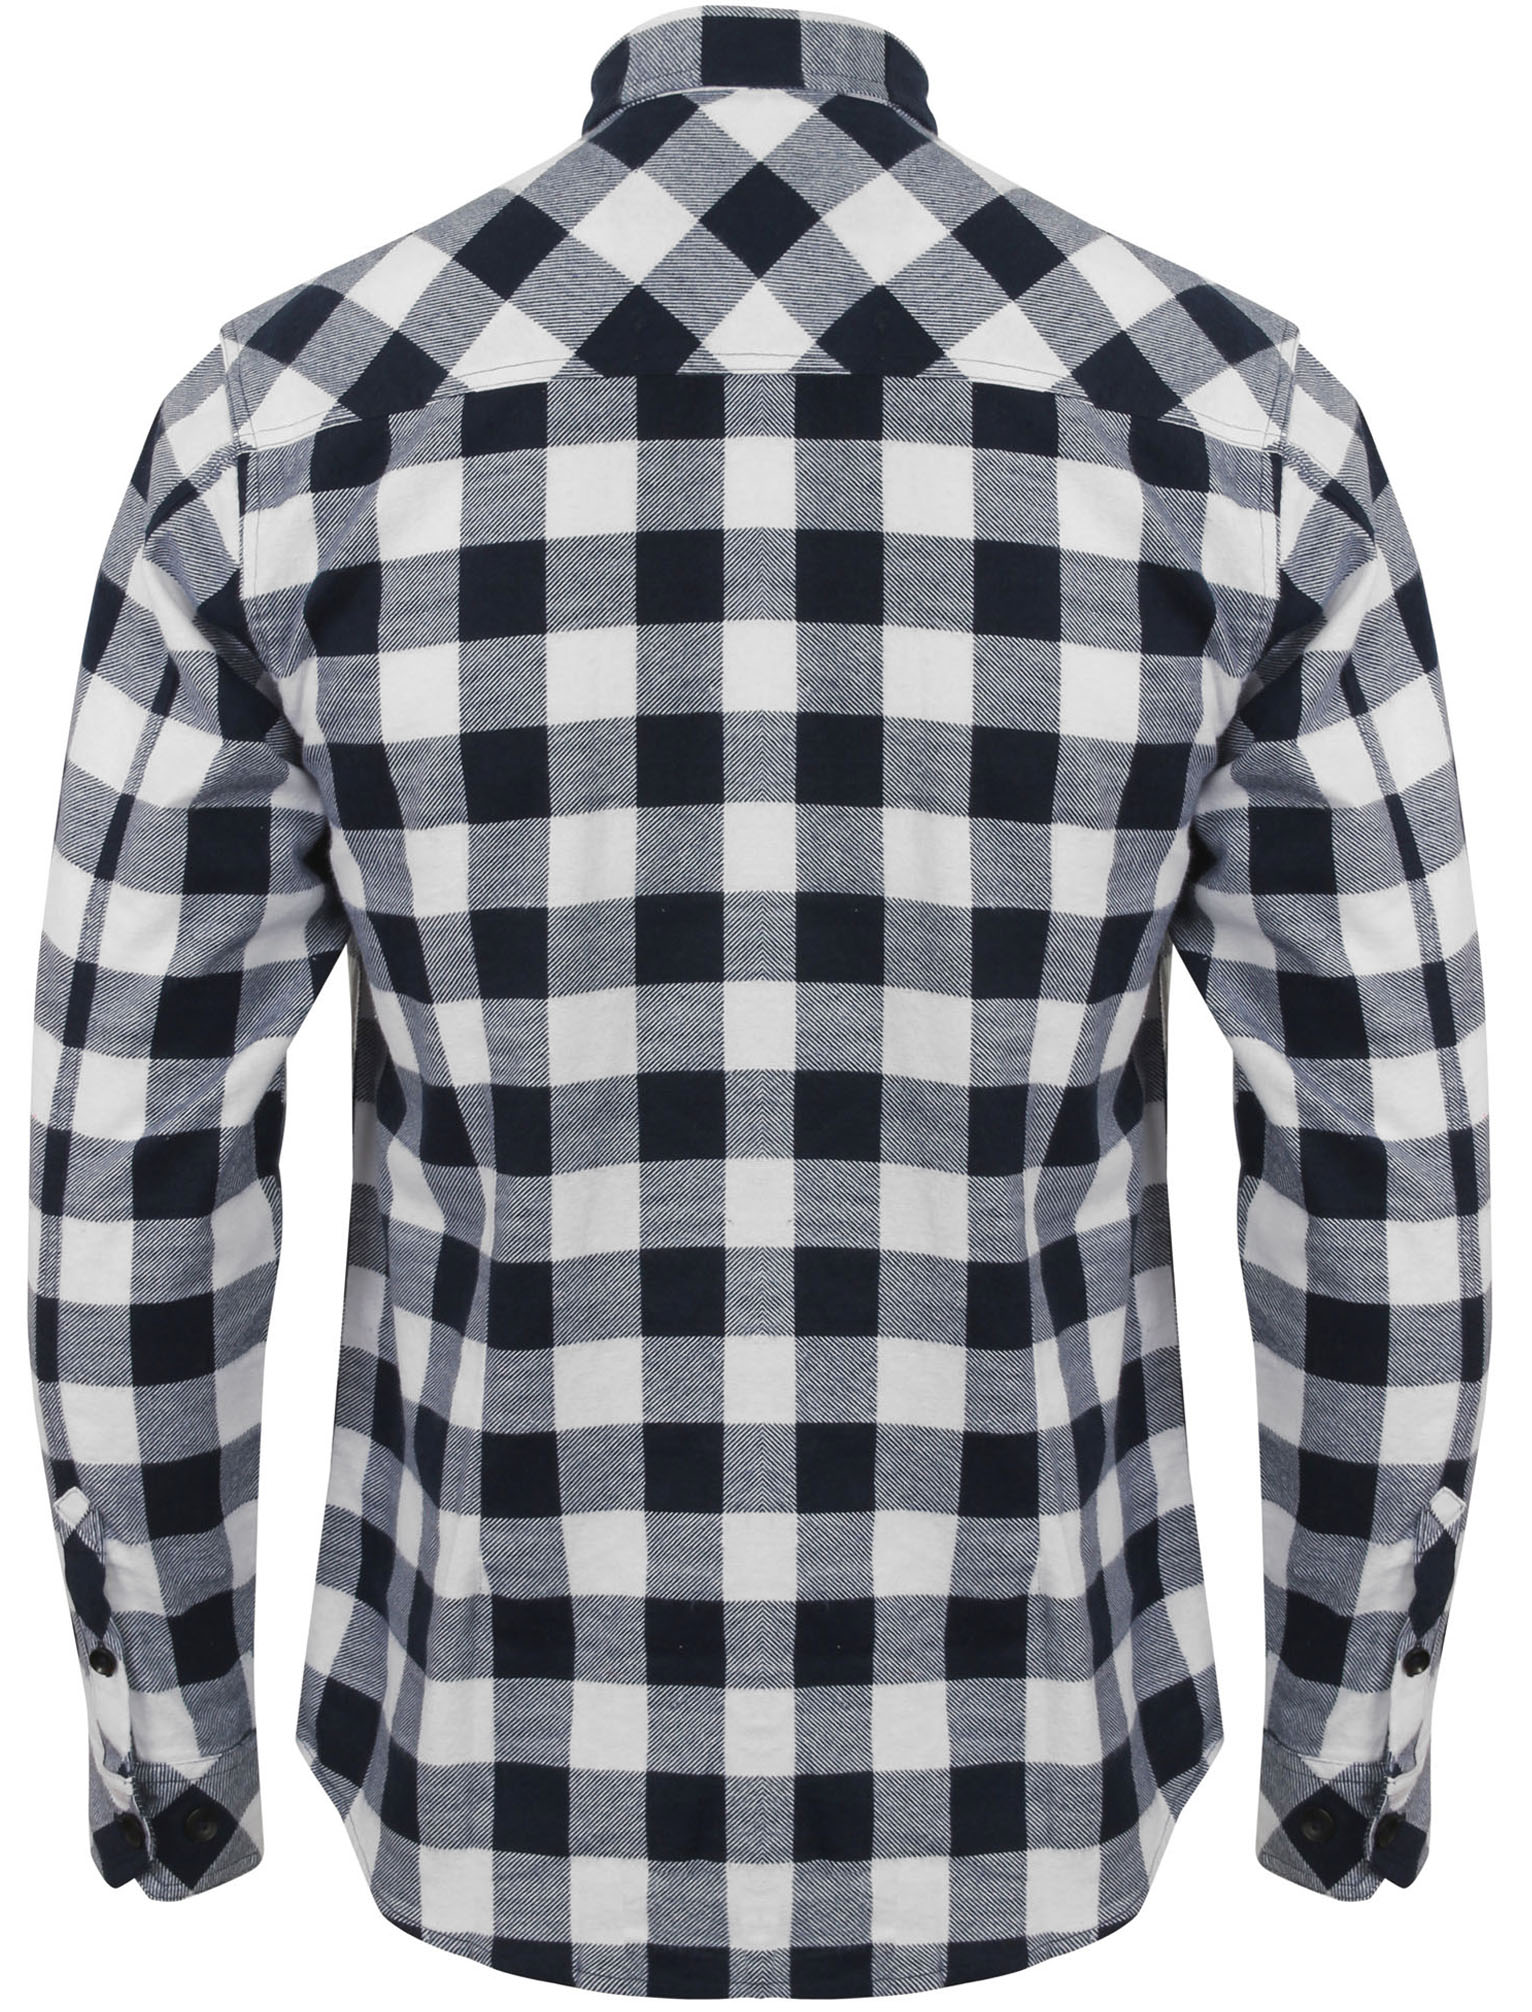 New-Mens-Tokyo-Laundry-Cotton-Long-Sleeve-Checked-Flannel-Shirt-Size-S-XL thumbnail 9